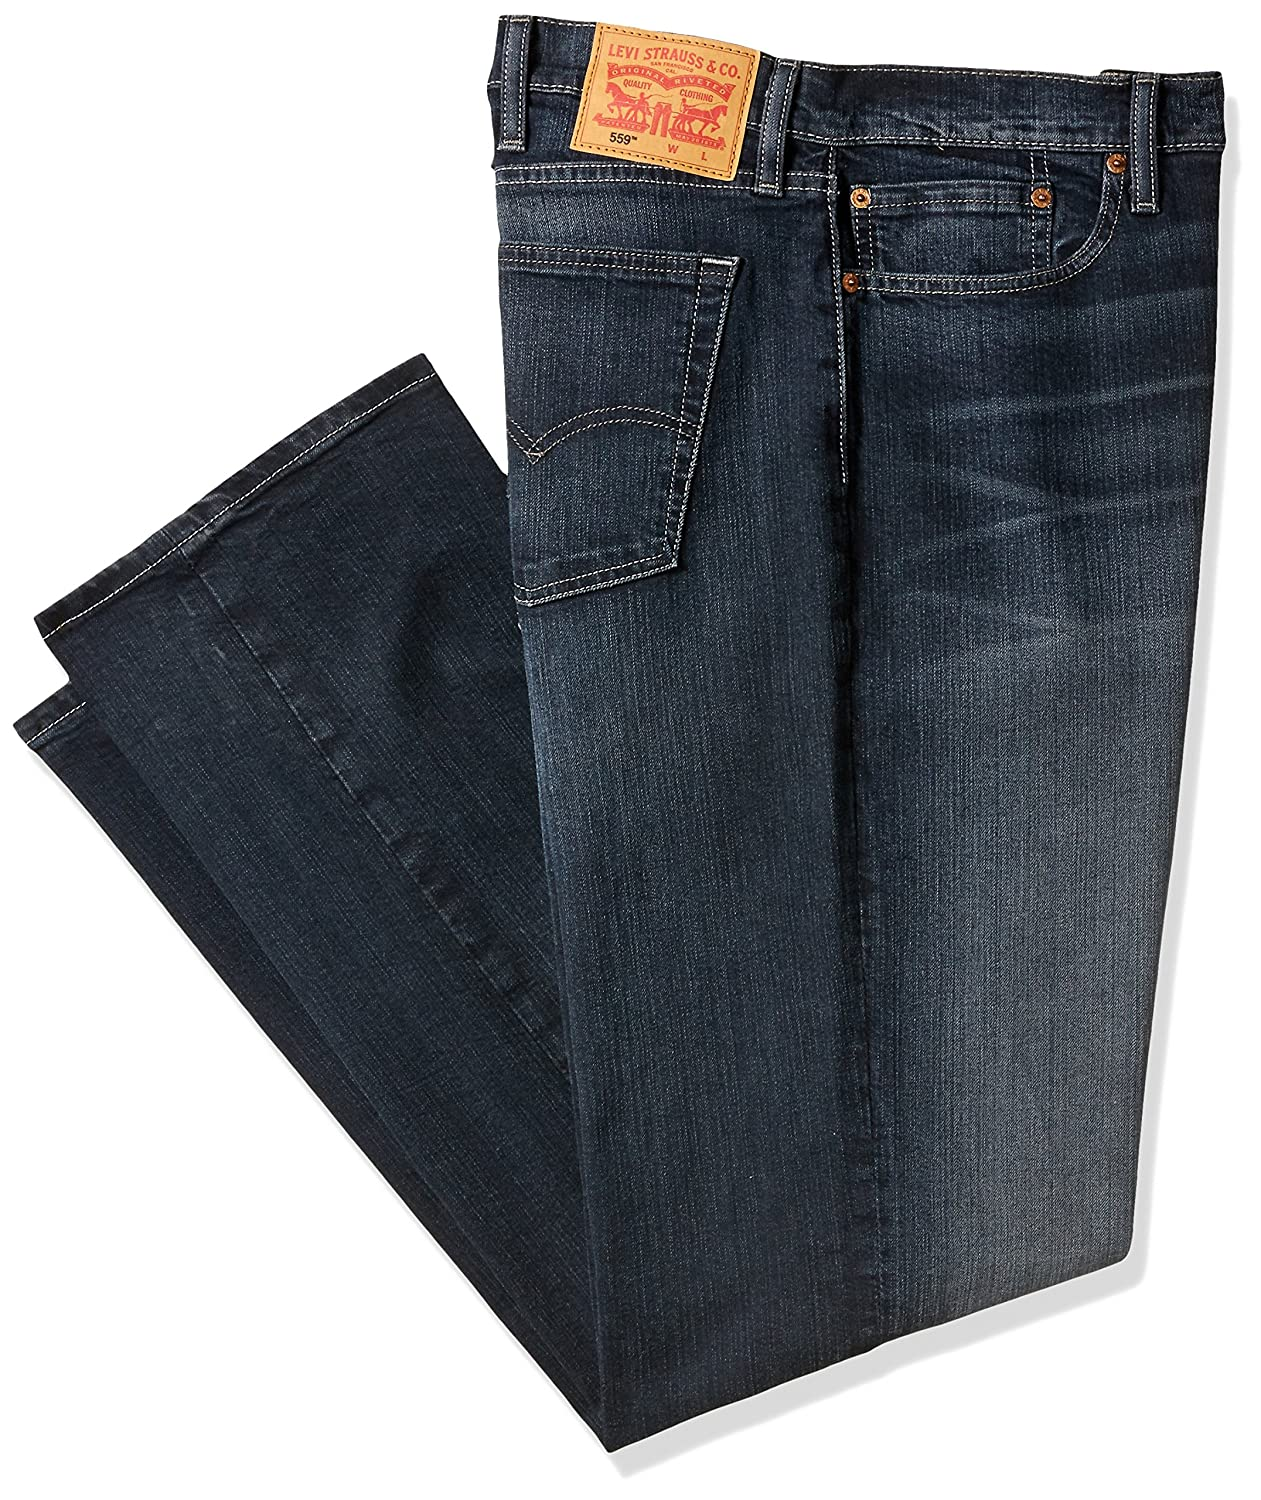 1dce2856 Amazon.com: Levi's Men's Big and Tall Big & Tall 559 Relaxed Straight-Leg  Jean: Clothing